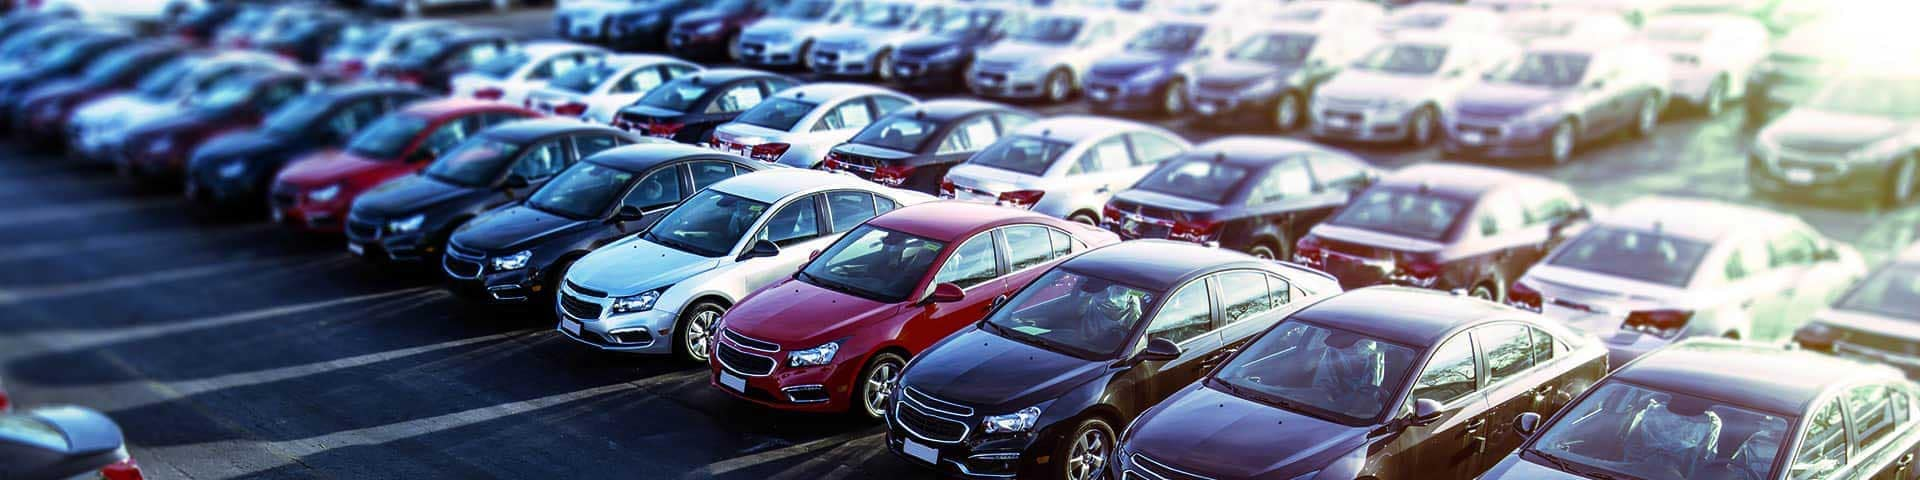 Used Cars in Buena Park, CA